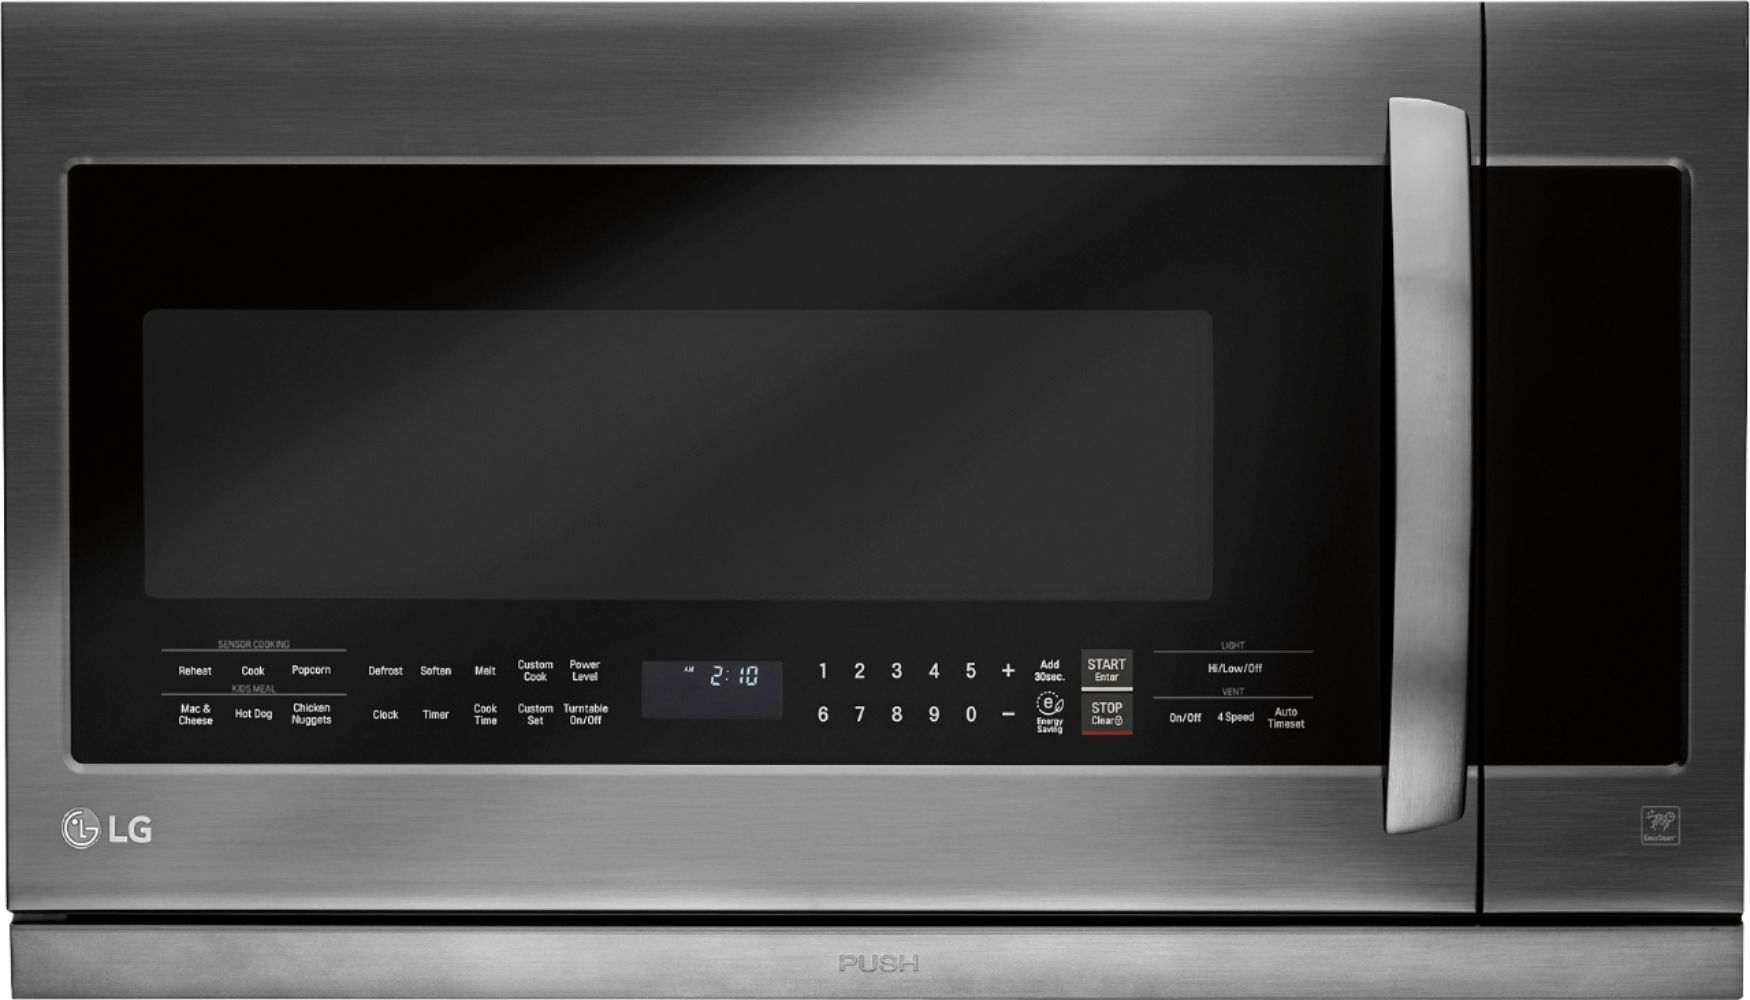 lg 2 2 cu ft extendavent 2 0 over the range microwave with sensor cooking printproof black stainless steel